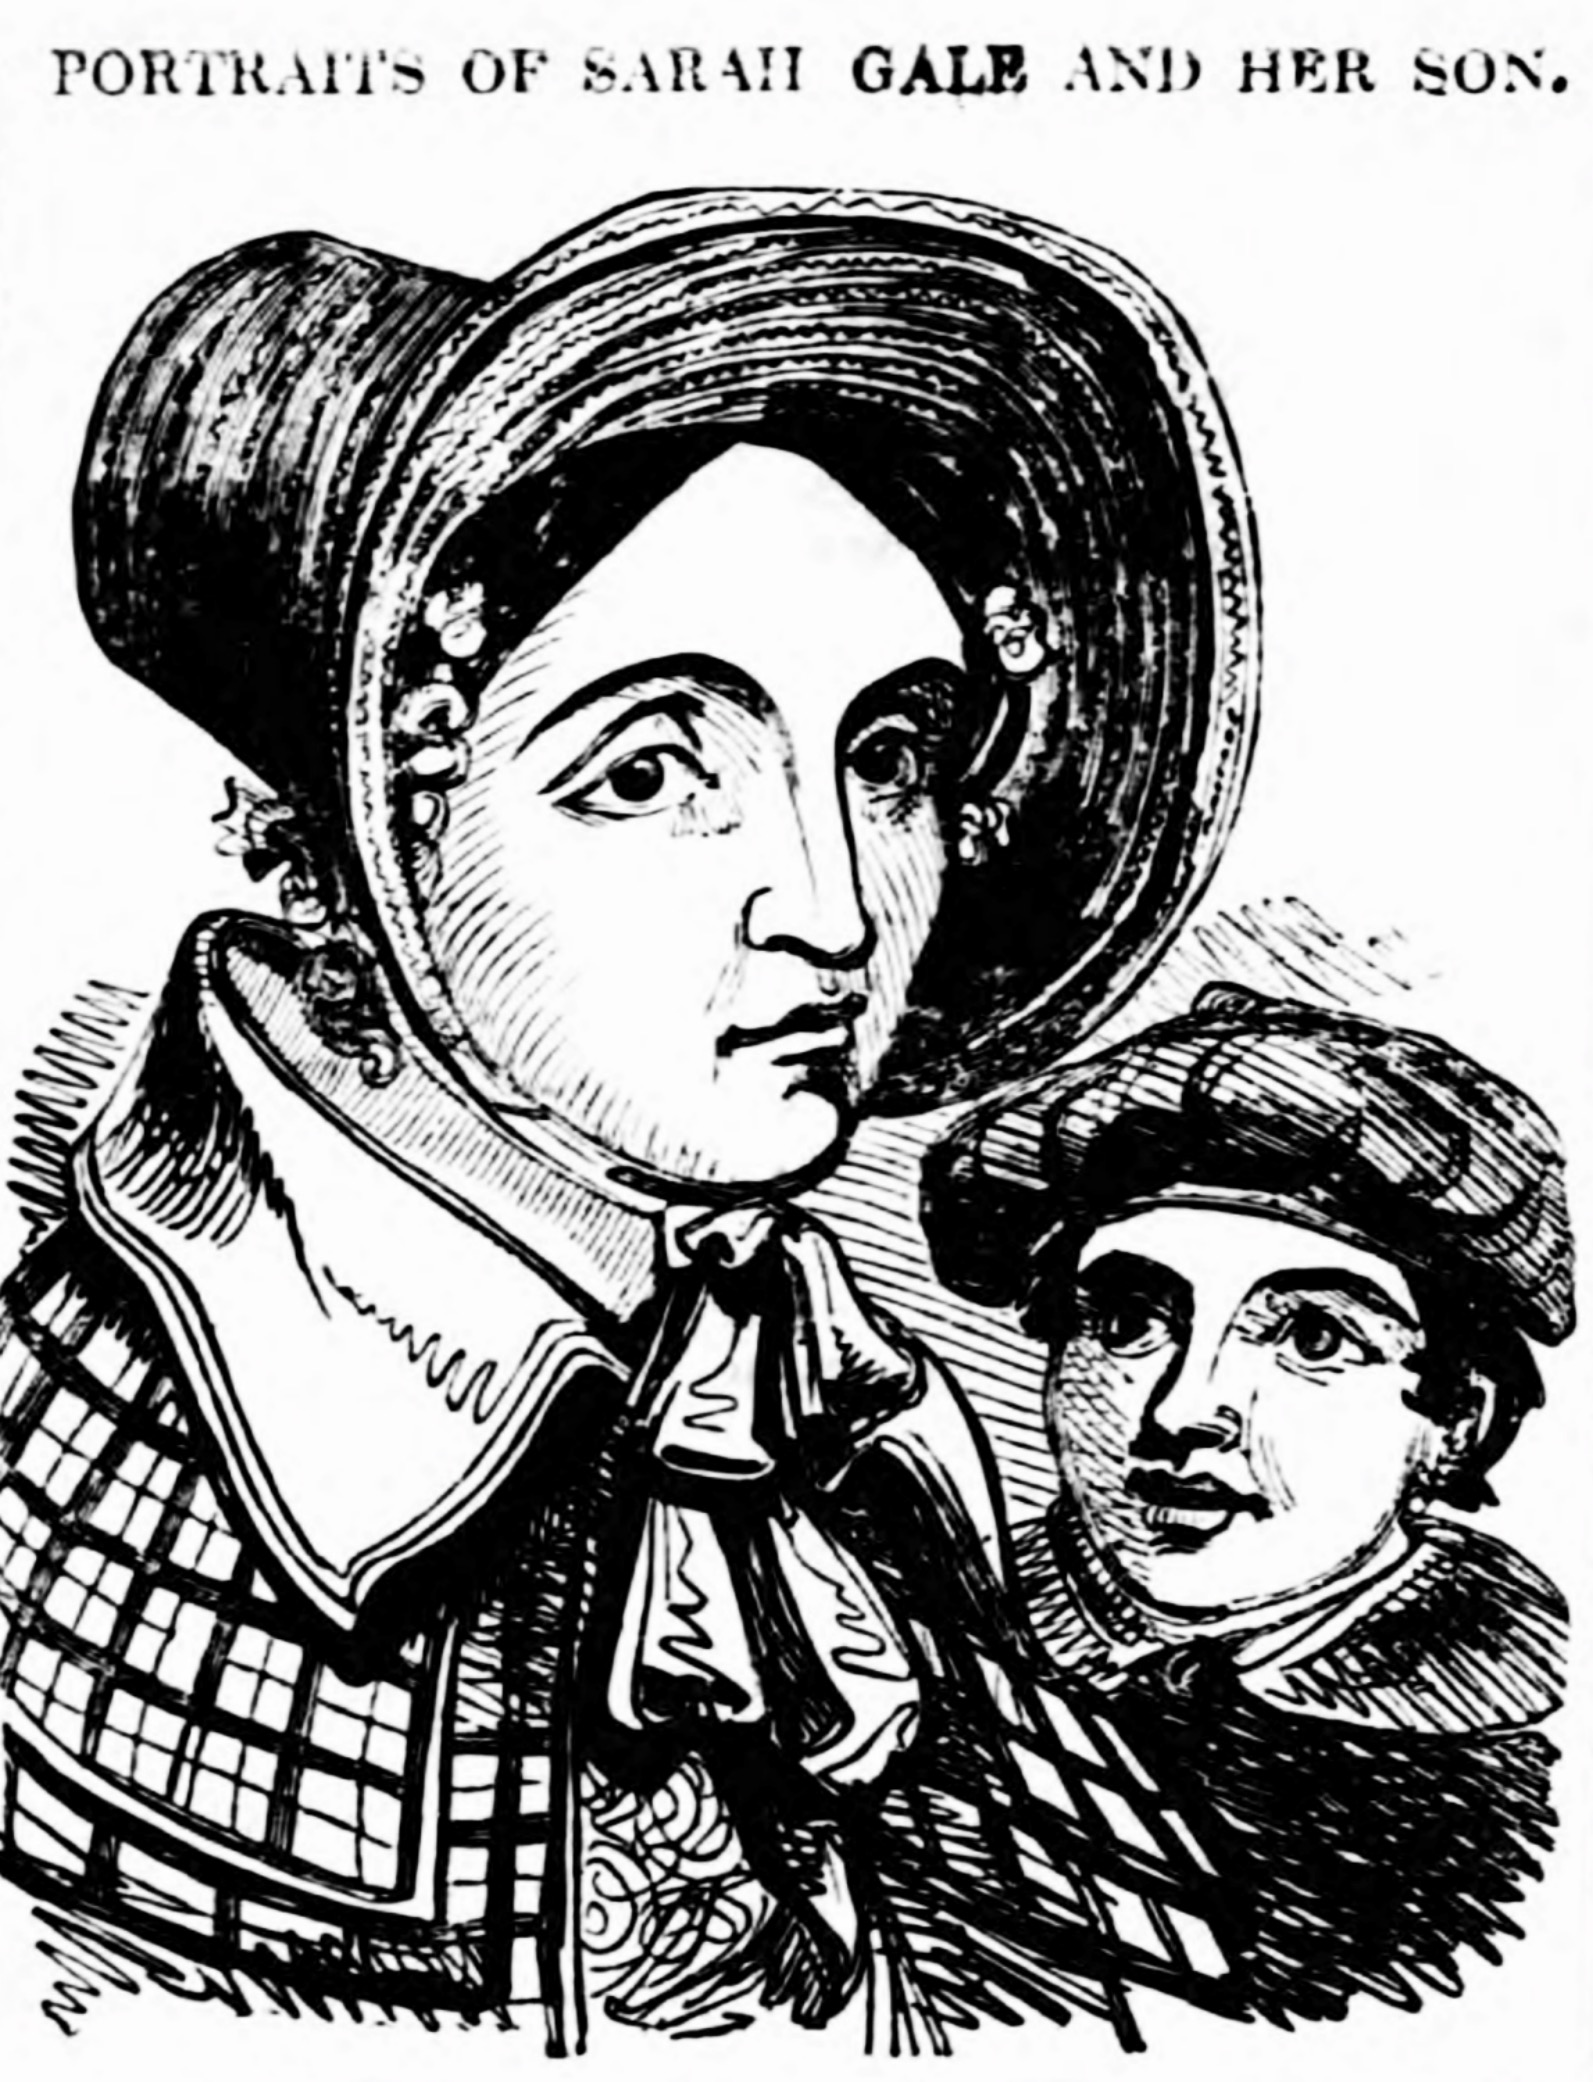 Sarah Gale with her son